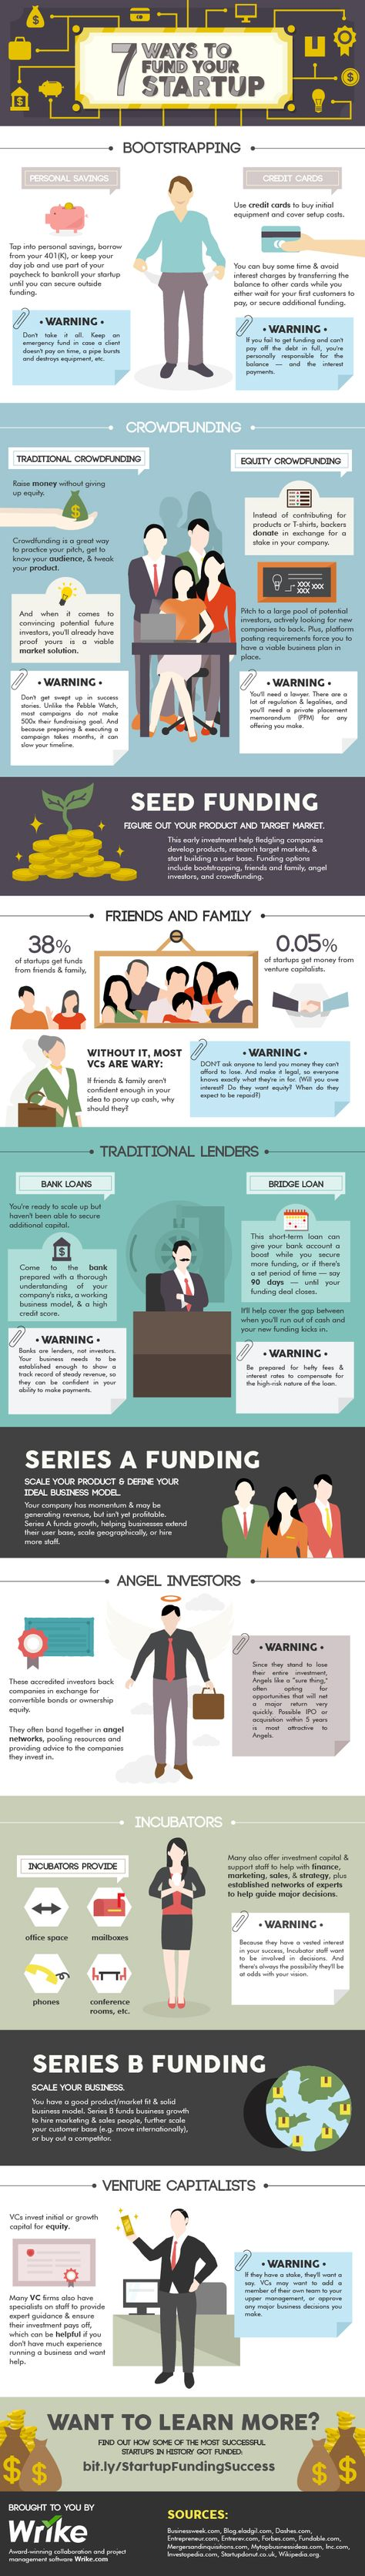 Want to Start a Business? Where will the Funding Come From?